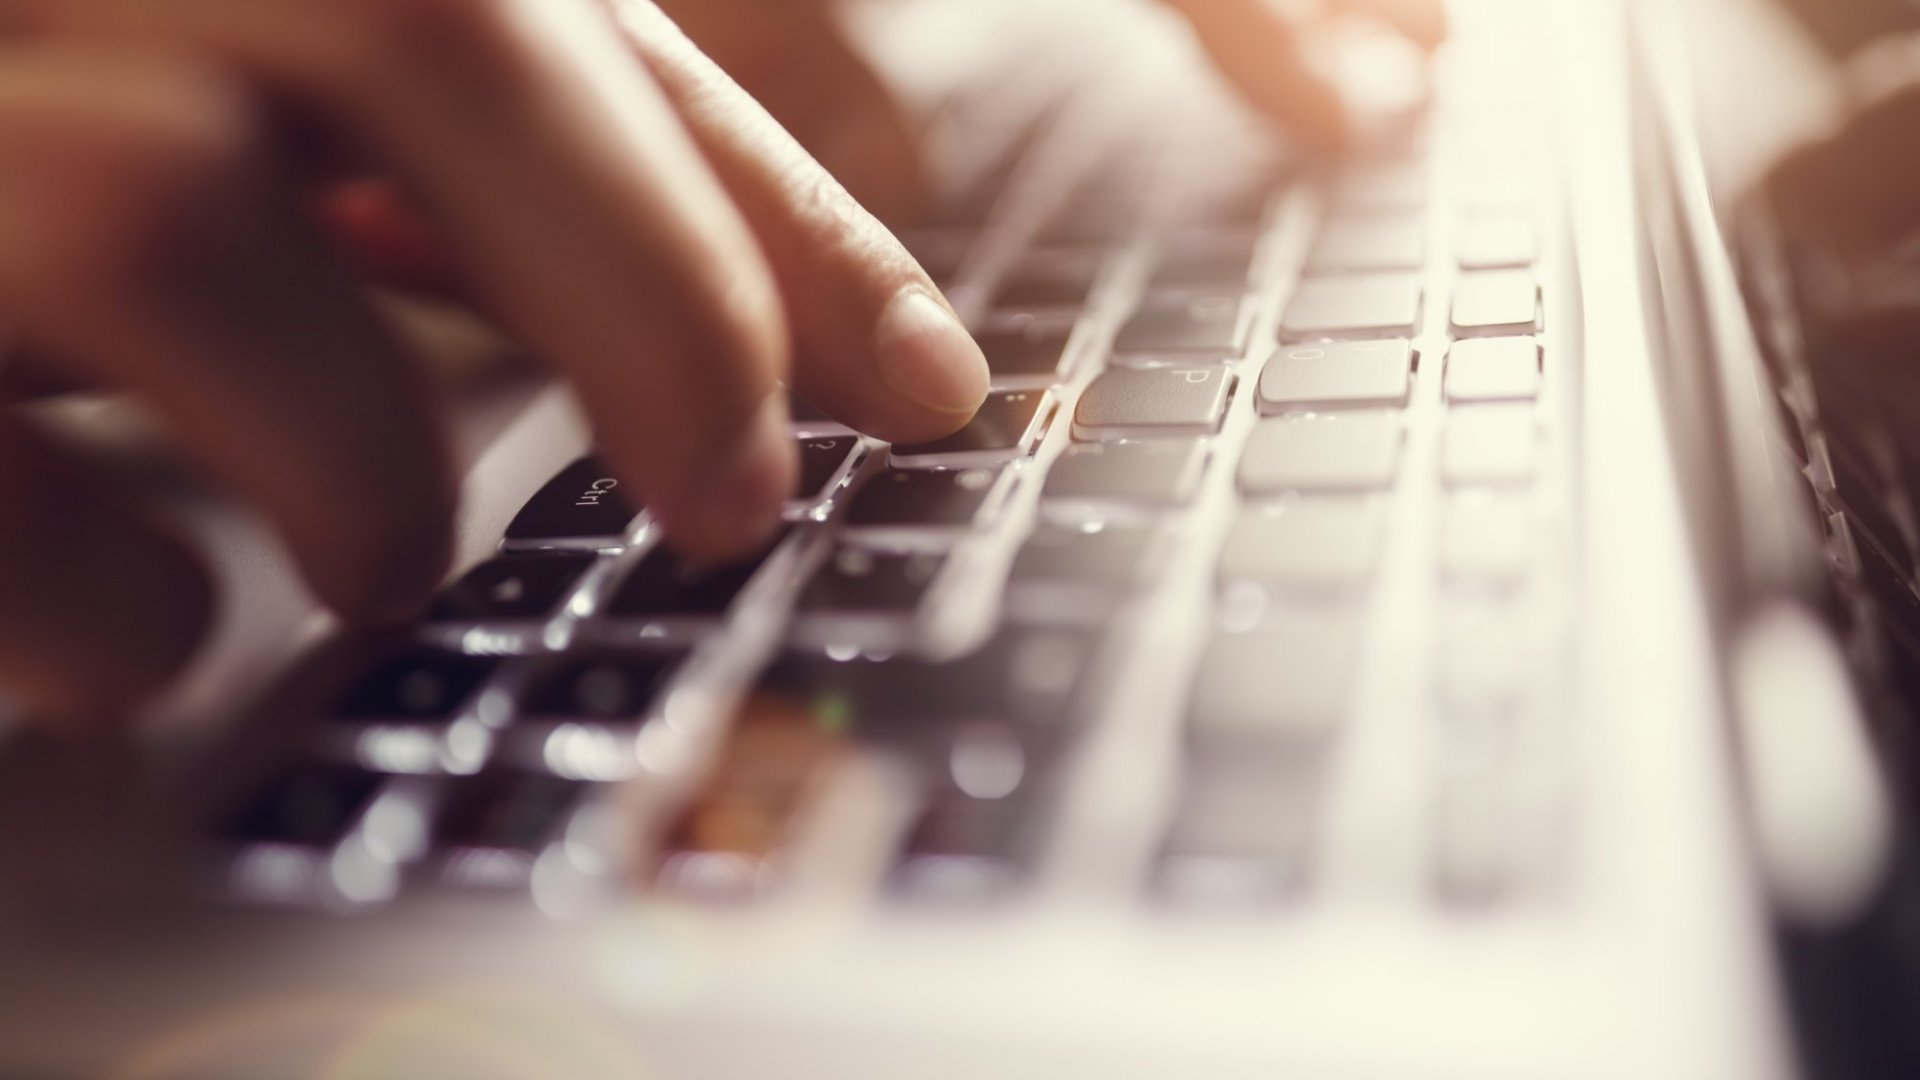 7 Email Marketing Hacks That Could Destroy Your Business